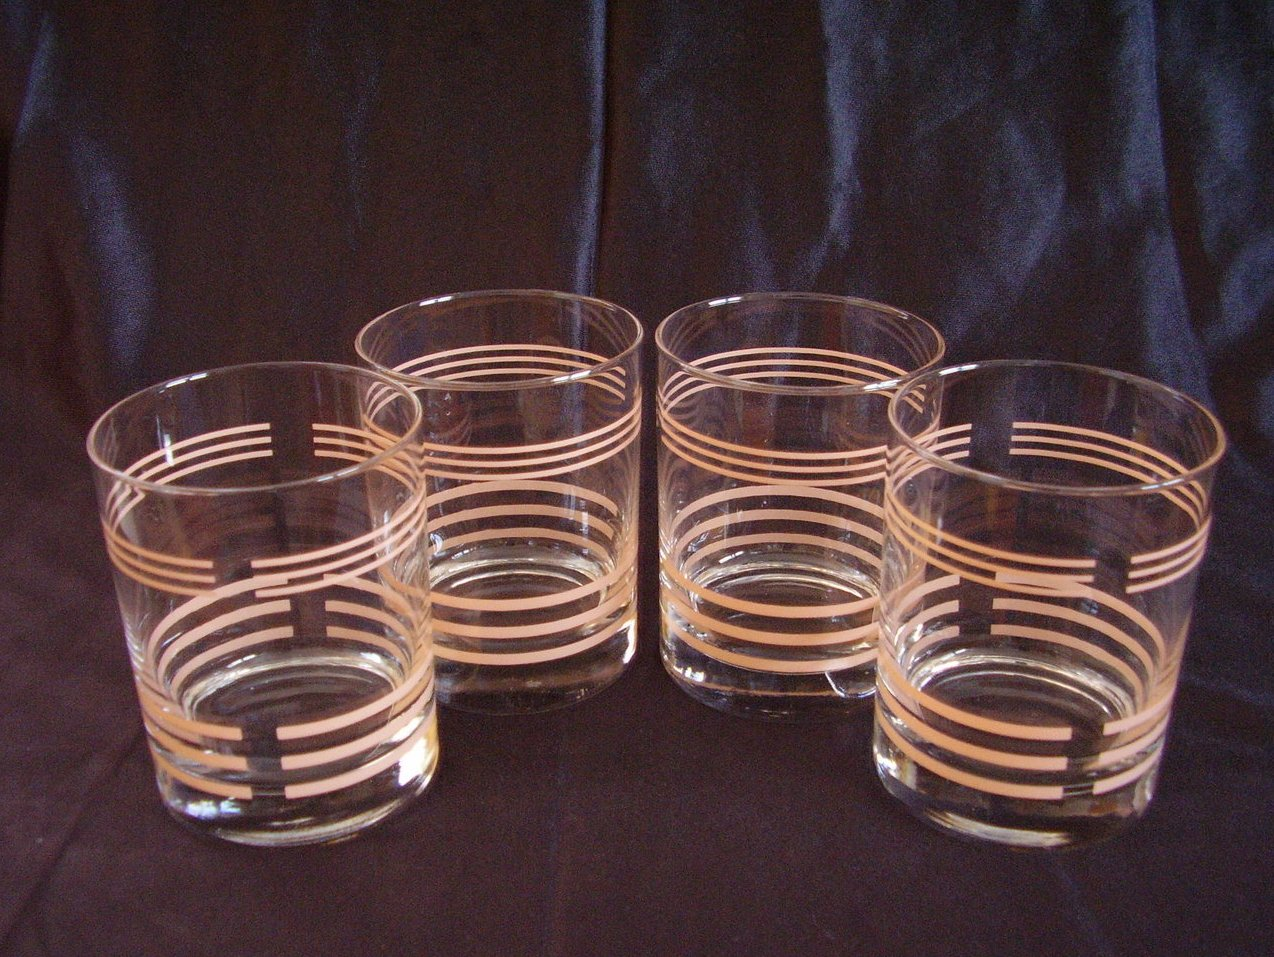 Apricot Rocks Old Fashions Drink Glasses New Set of 4